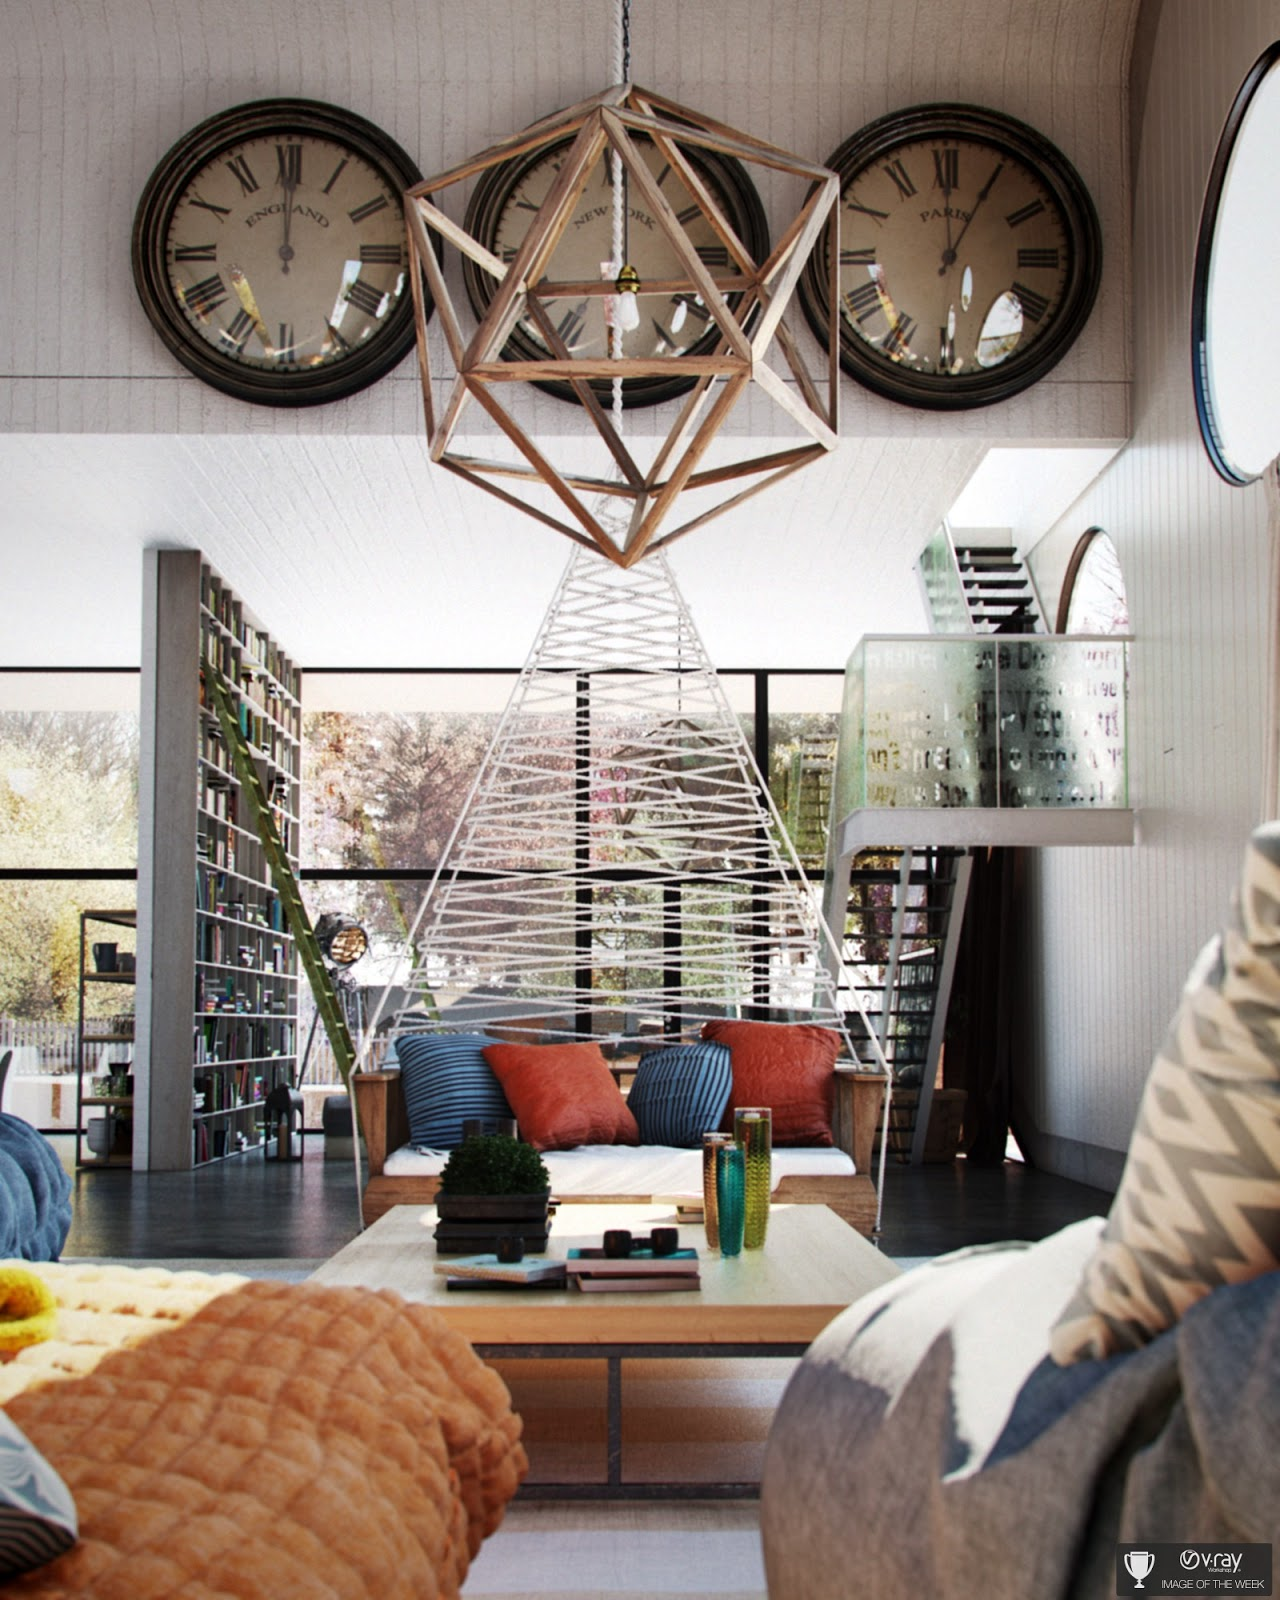 sale retailer 65df4 9ceee Join and Submit your Vray Artworks to Win the Image of the Week here